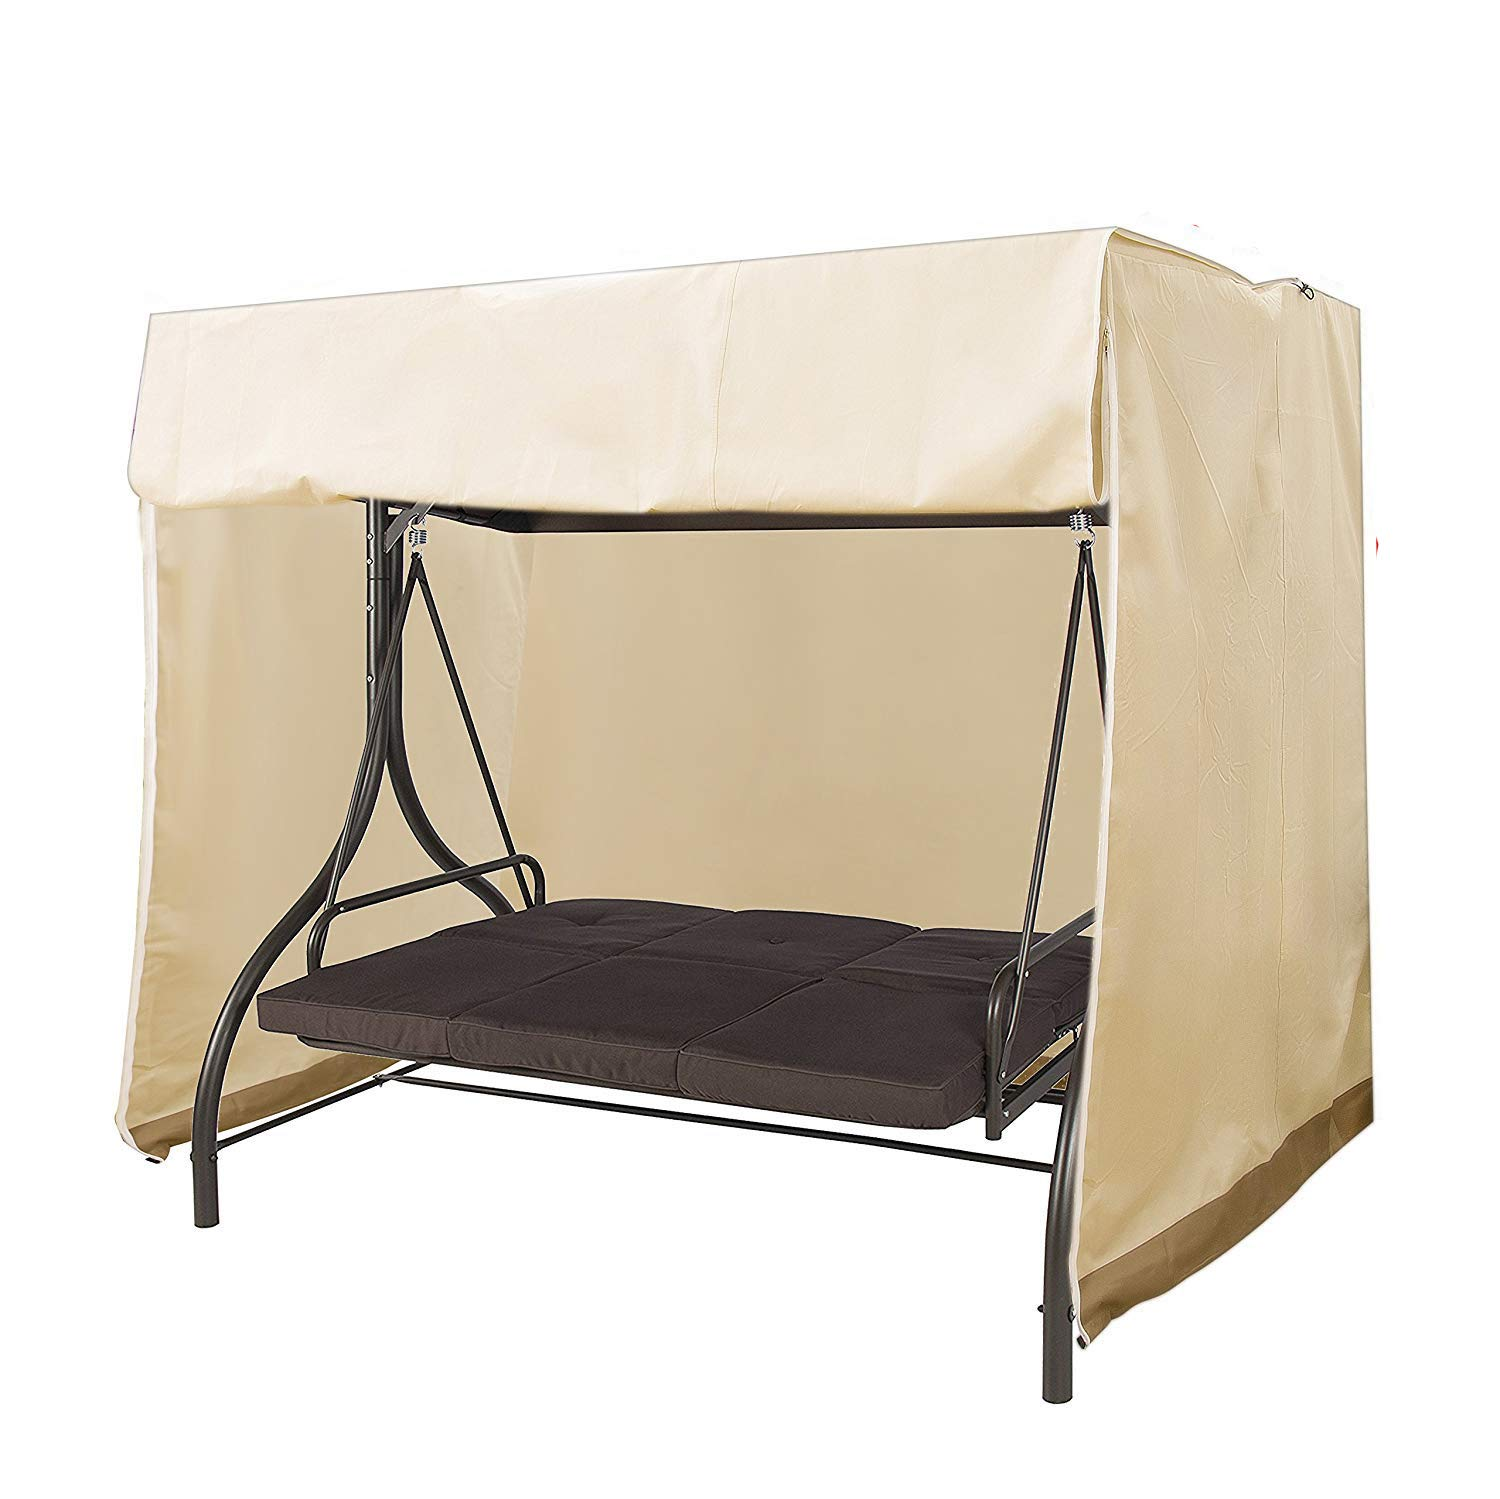 Mitef Waterproof and Dustproof Garden Swing Cover, Outdoor Furniture Protective Cover, 223x152x183cm/87.7'' x59.8 x72, Beige and Brown by Mitef